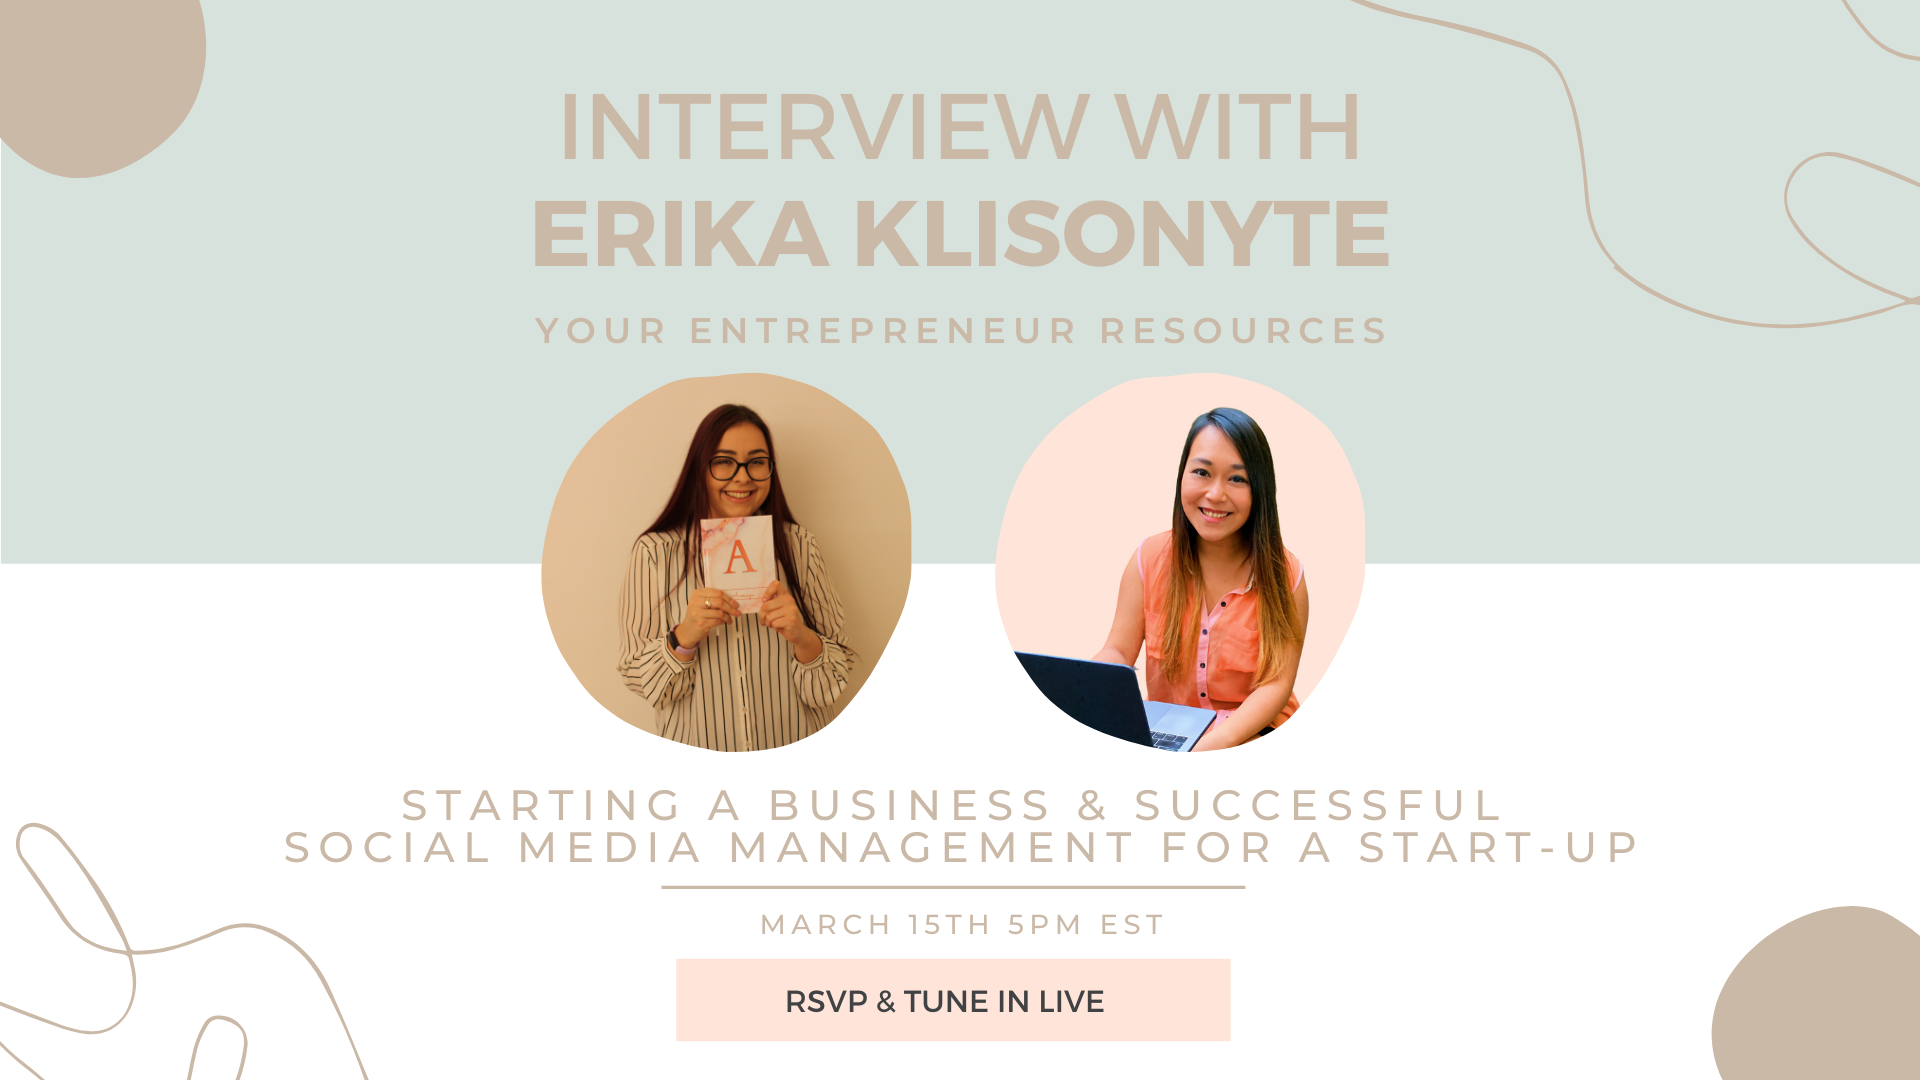 Starting a business & Successful Social Media Management for a Start-up with Erika Klisonyte